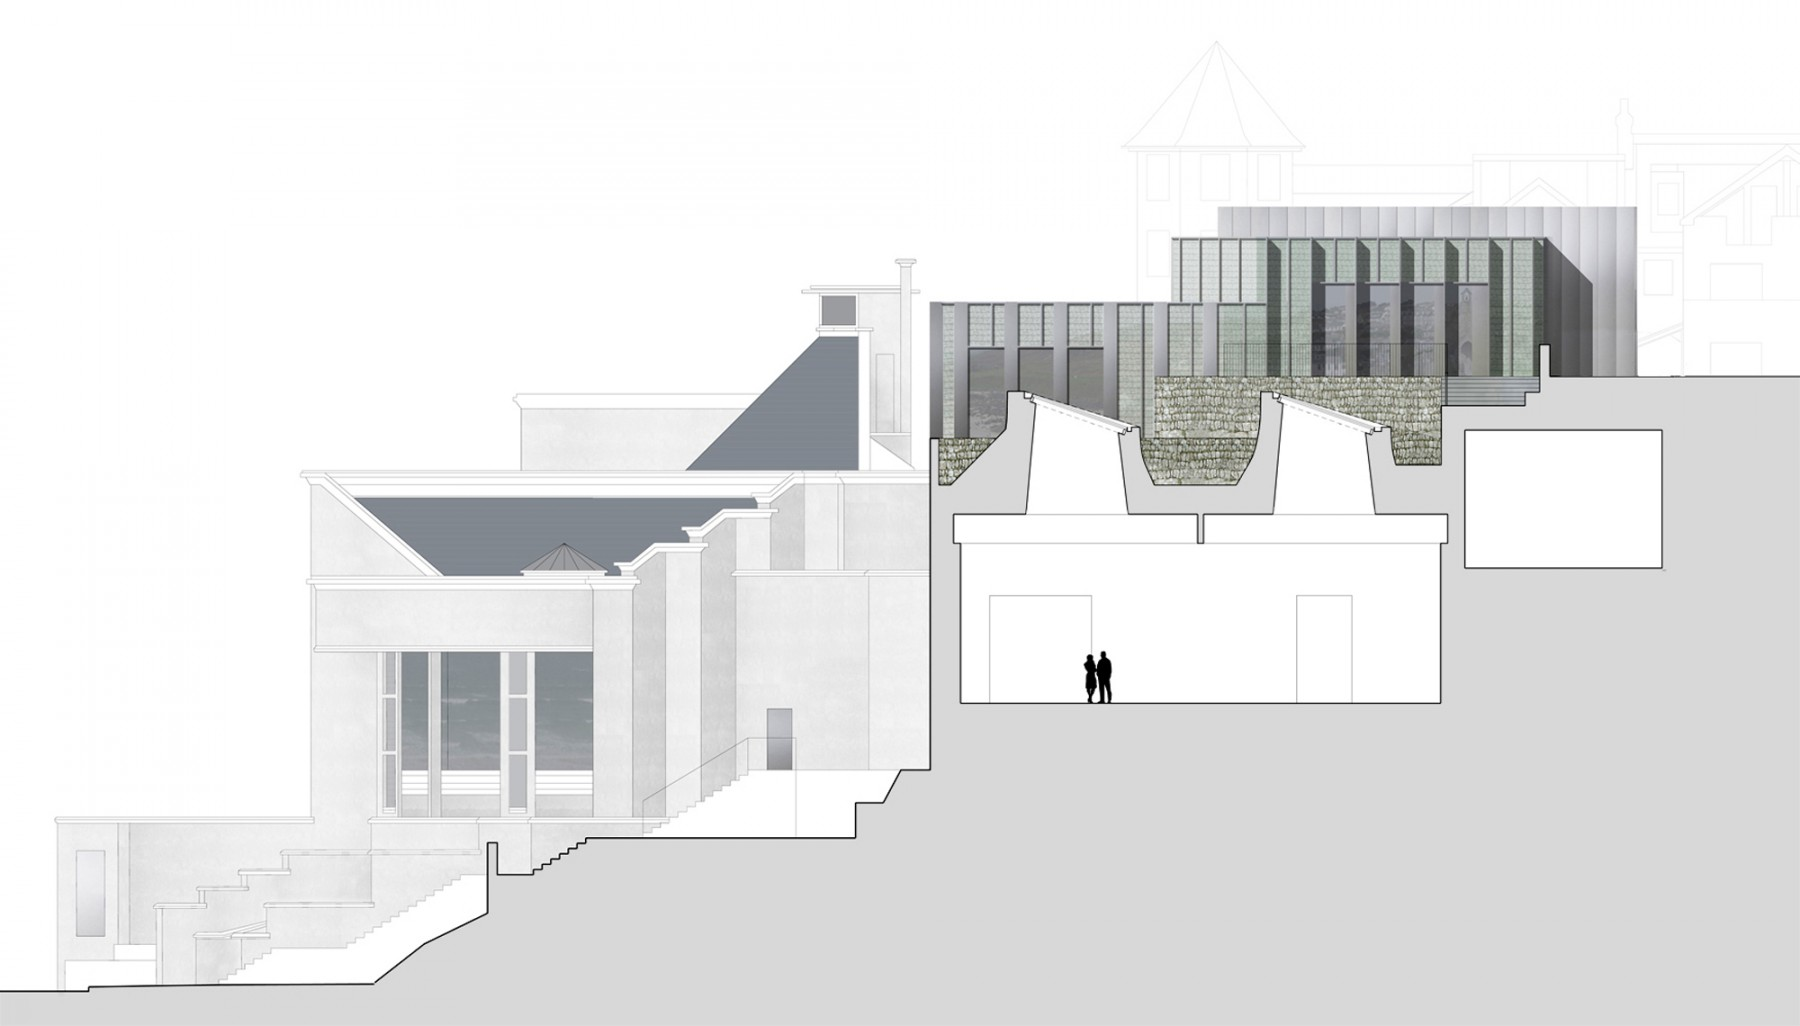 Tate-St-Ives-Cornwall-council-new-Extension-competition-Art-gallery-education-Jamie-Fobert-Architects-section